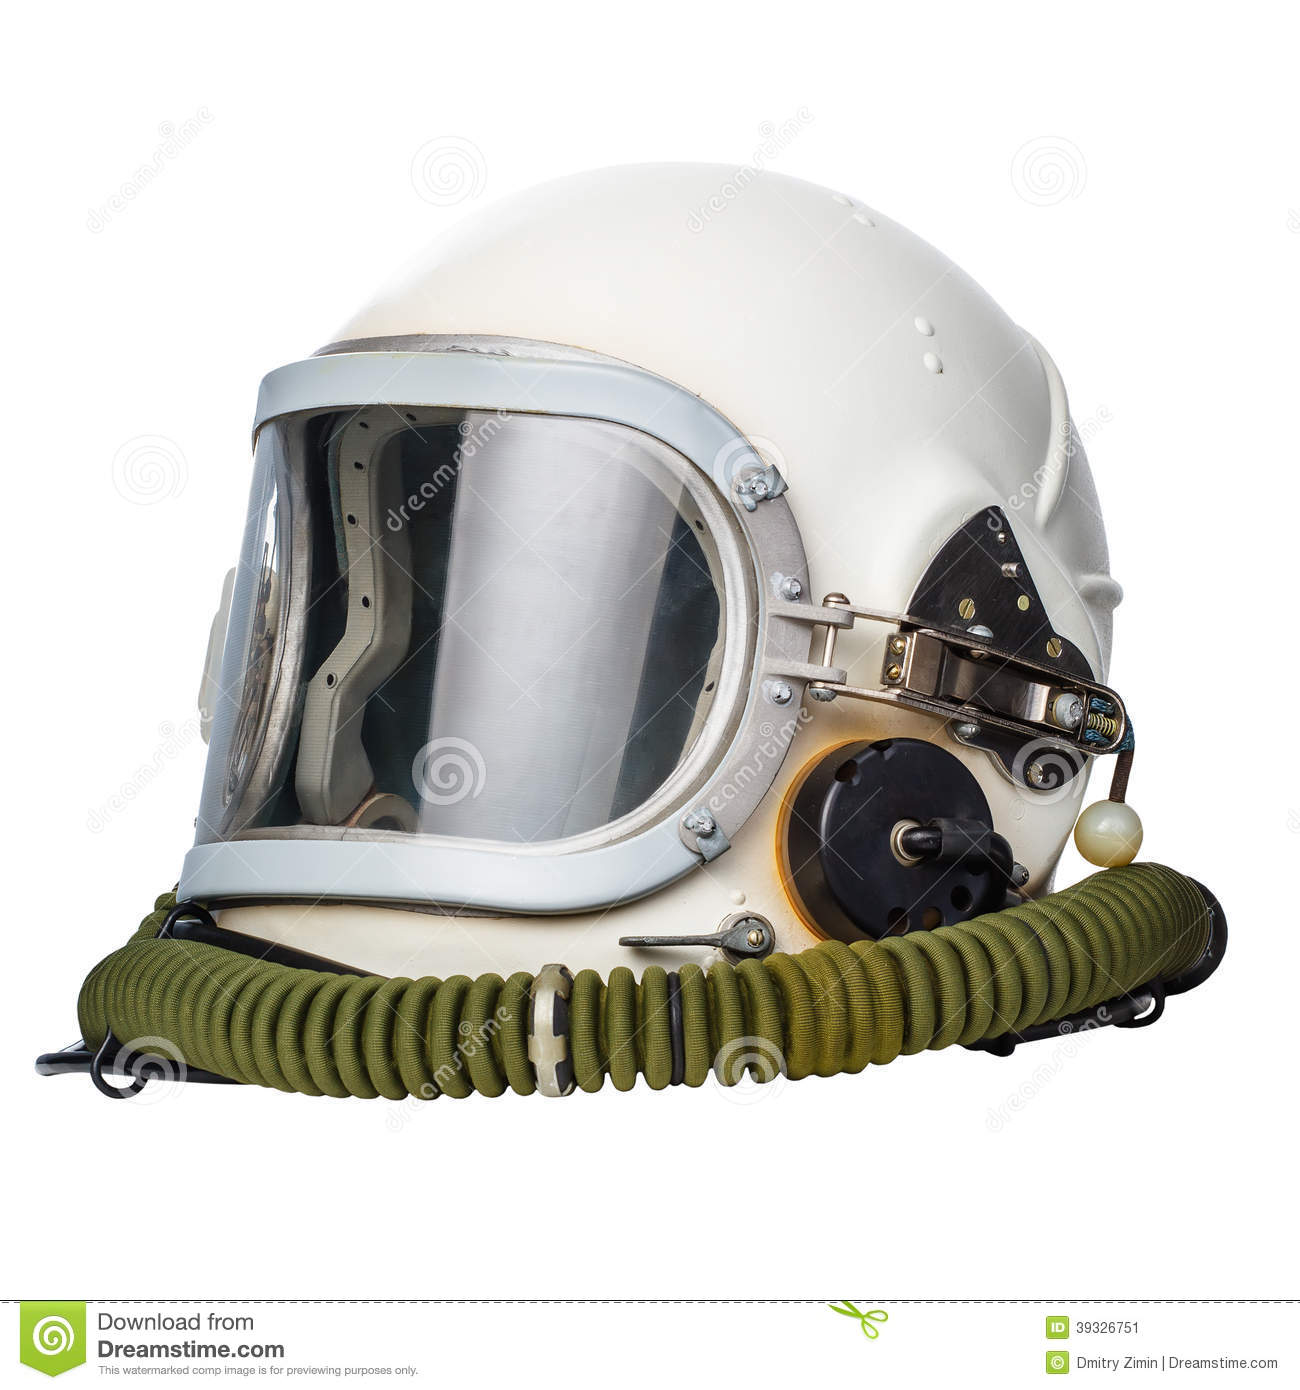 Vintage Space Helmet Stock Photo - Image: 39326751